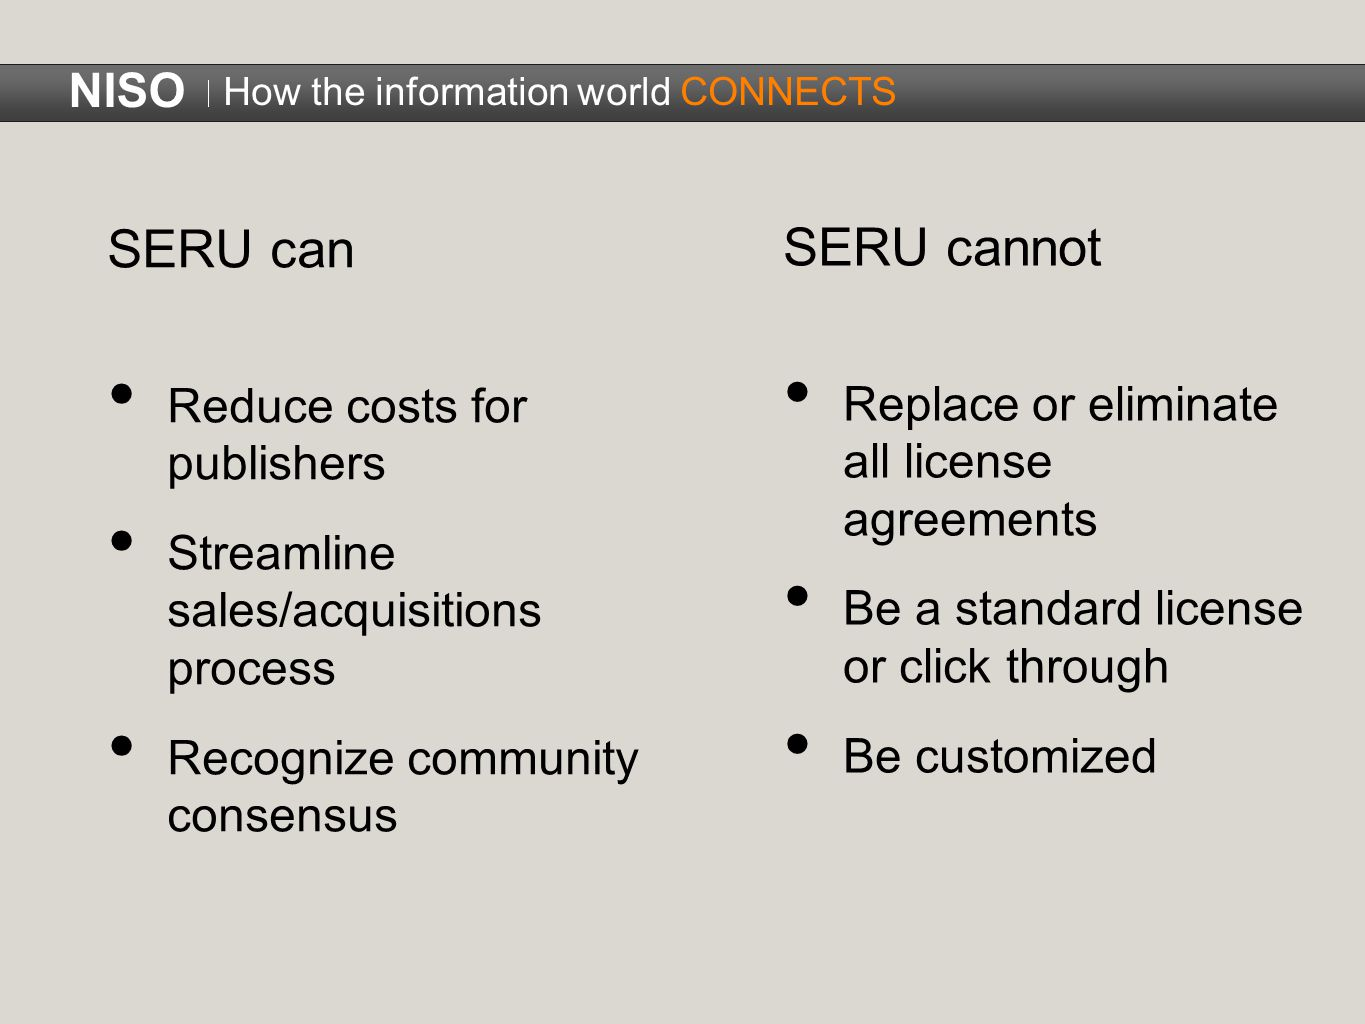 SERU can Reduce costs for publishers Streamline sales/acquisitions process Recognize community consensus SERU cannot Replace or eliminate all license agreements Be a standard license or click through Be customized NISO How the information world CONNECTS